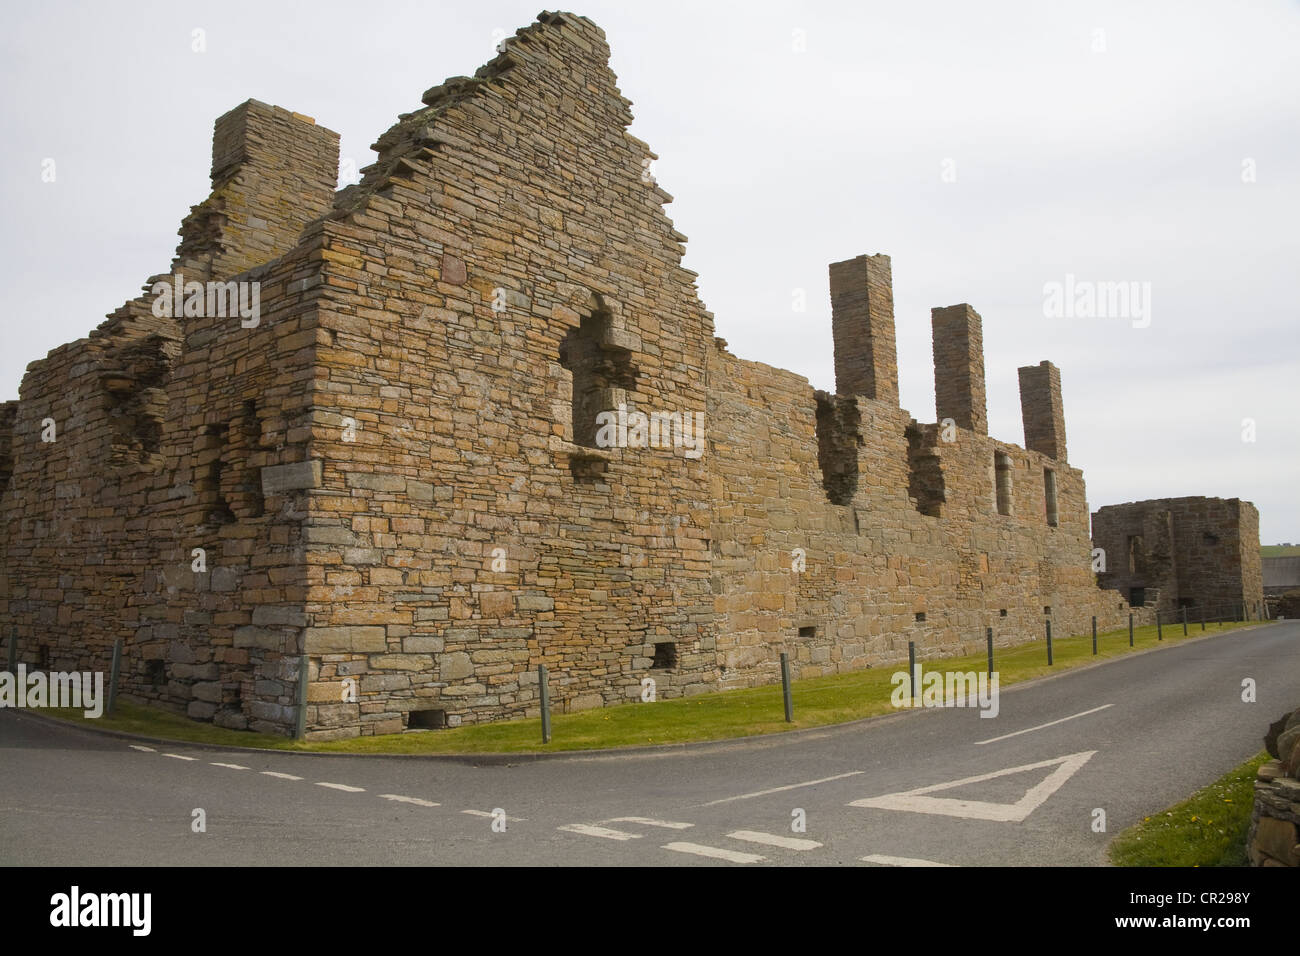 Birsay Orkney Islands West Mainland Scotland May Ruins of Earl's Palace built by Earl Robert Stewart in 16thc - Stock Image